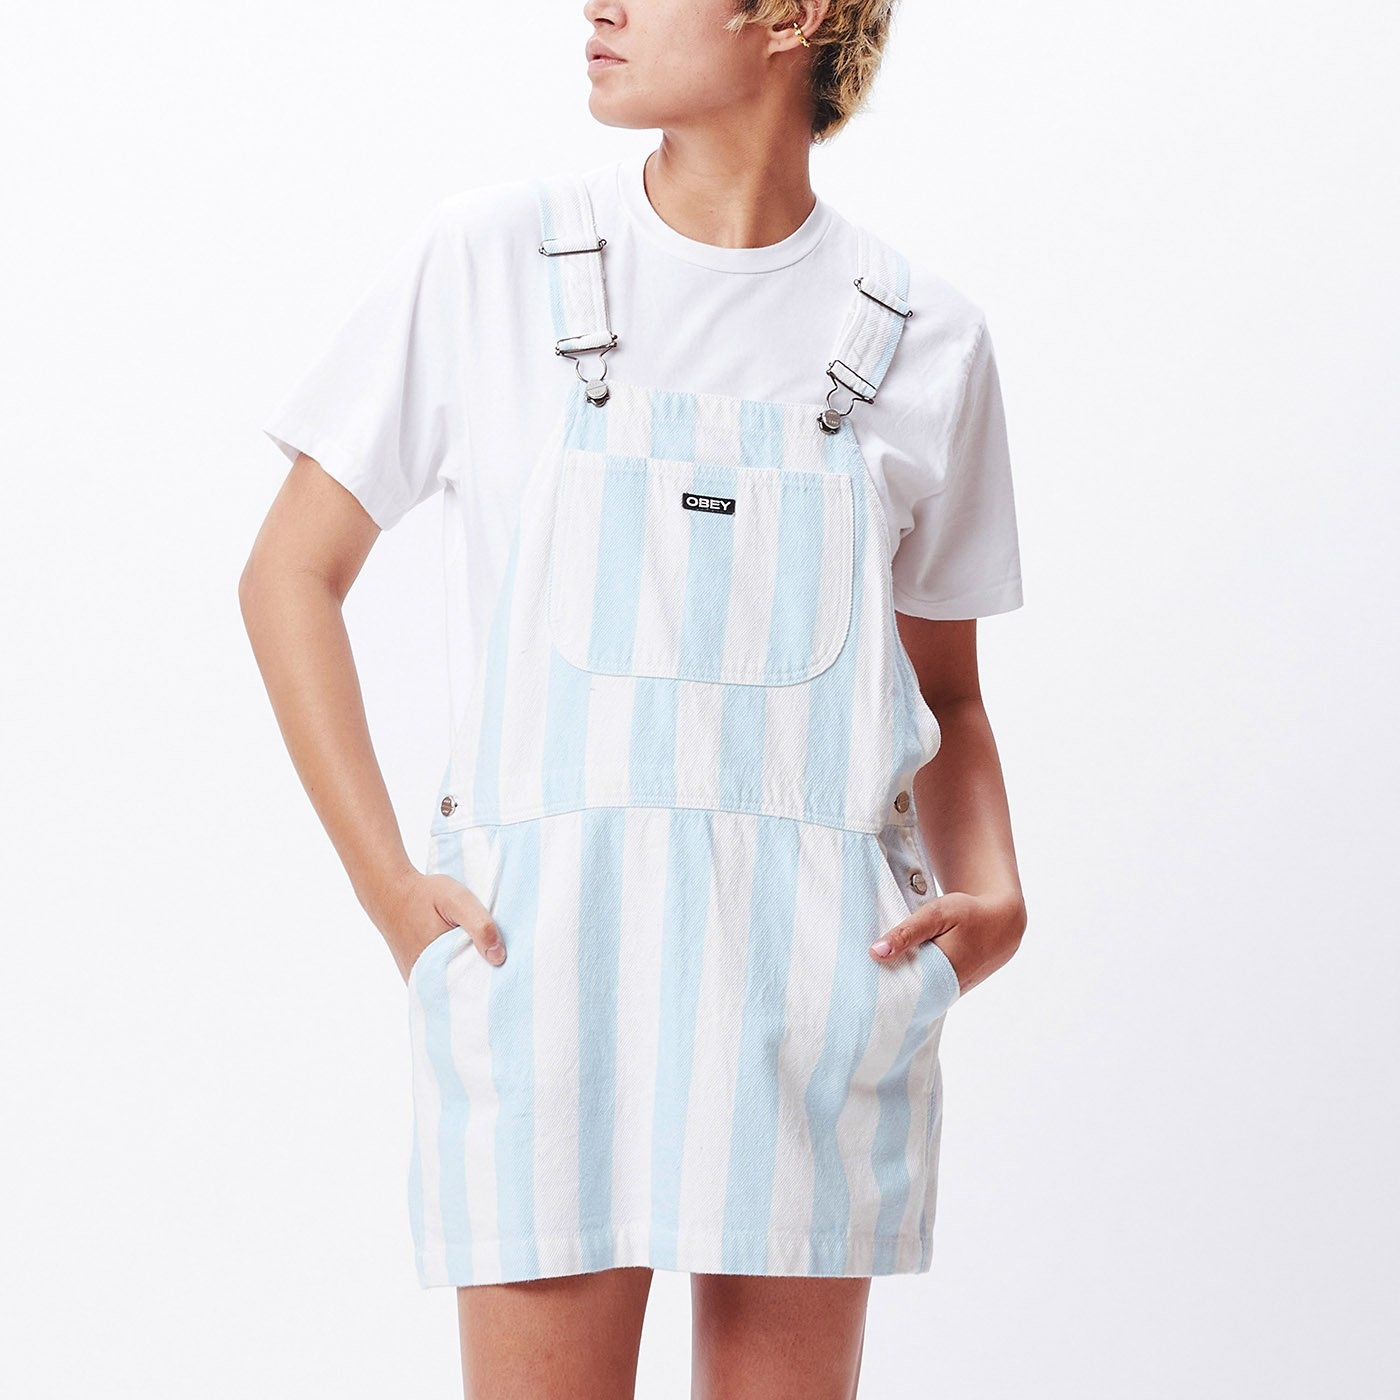 Obey Obey - Rex Overall Dress